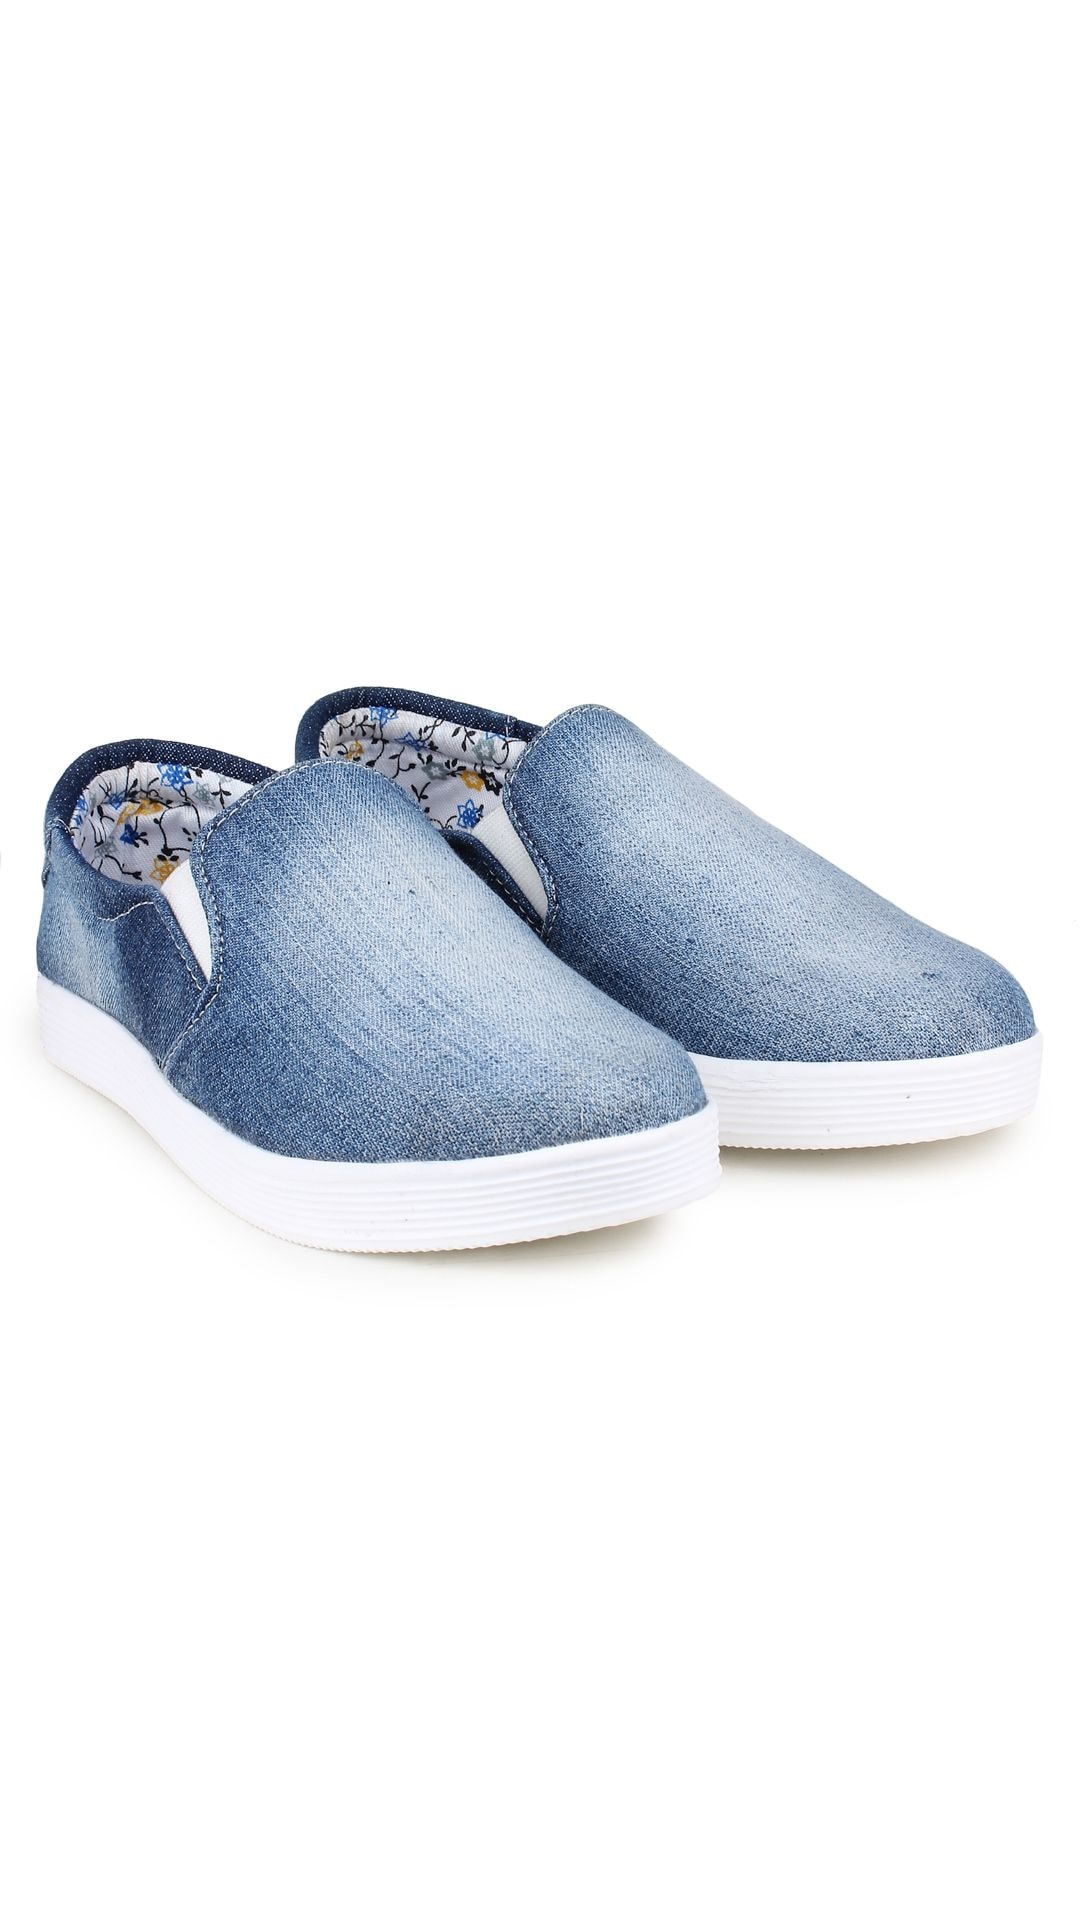 https://assetscdn1.paytm.com/images/catalog/product/F/FO/FOOJEANS-MOCCASDO-B204004A8001C0/1..jpg